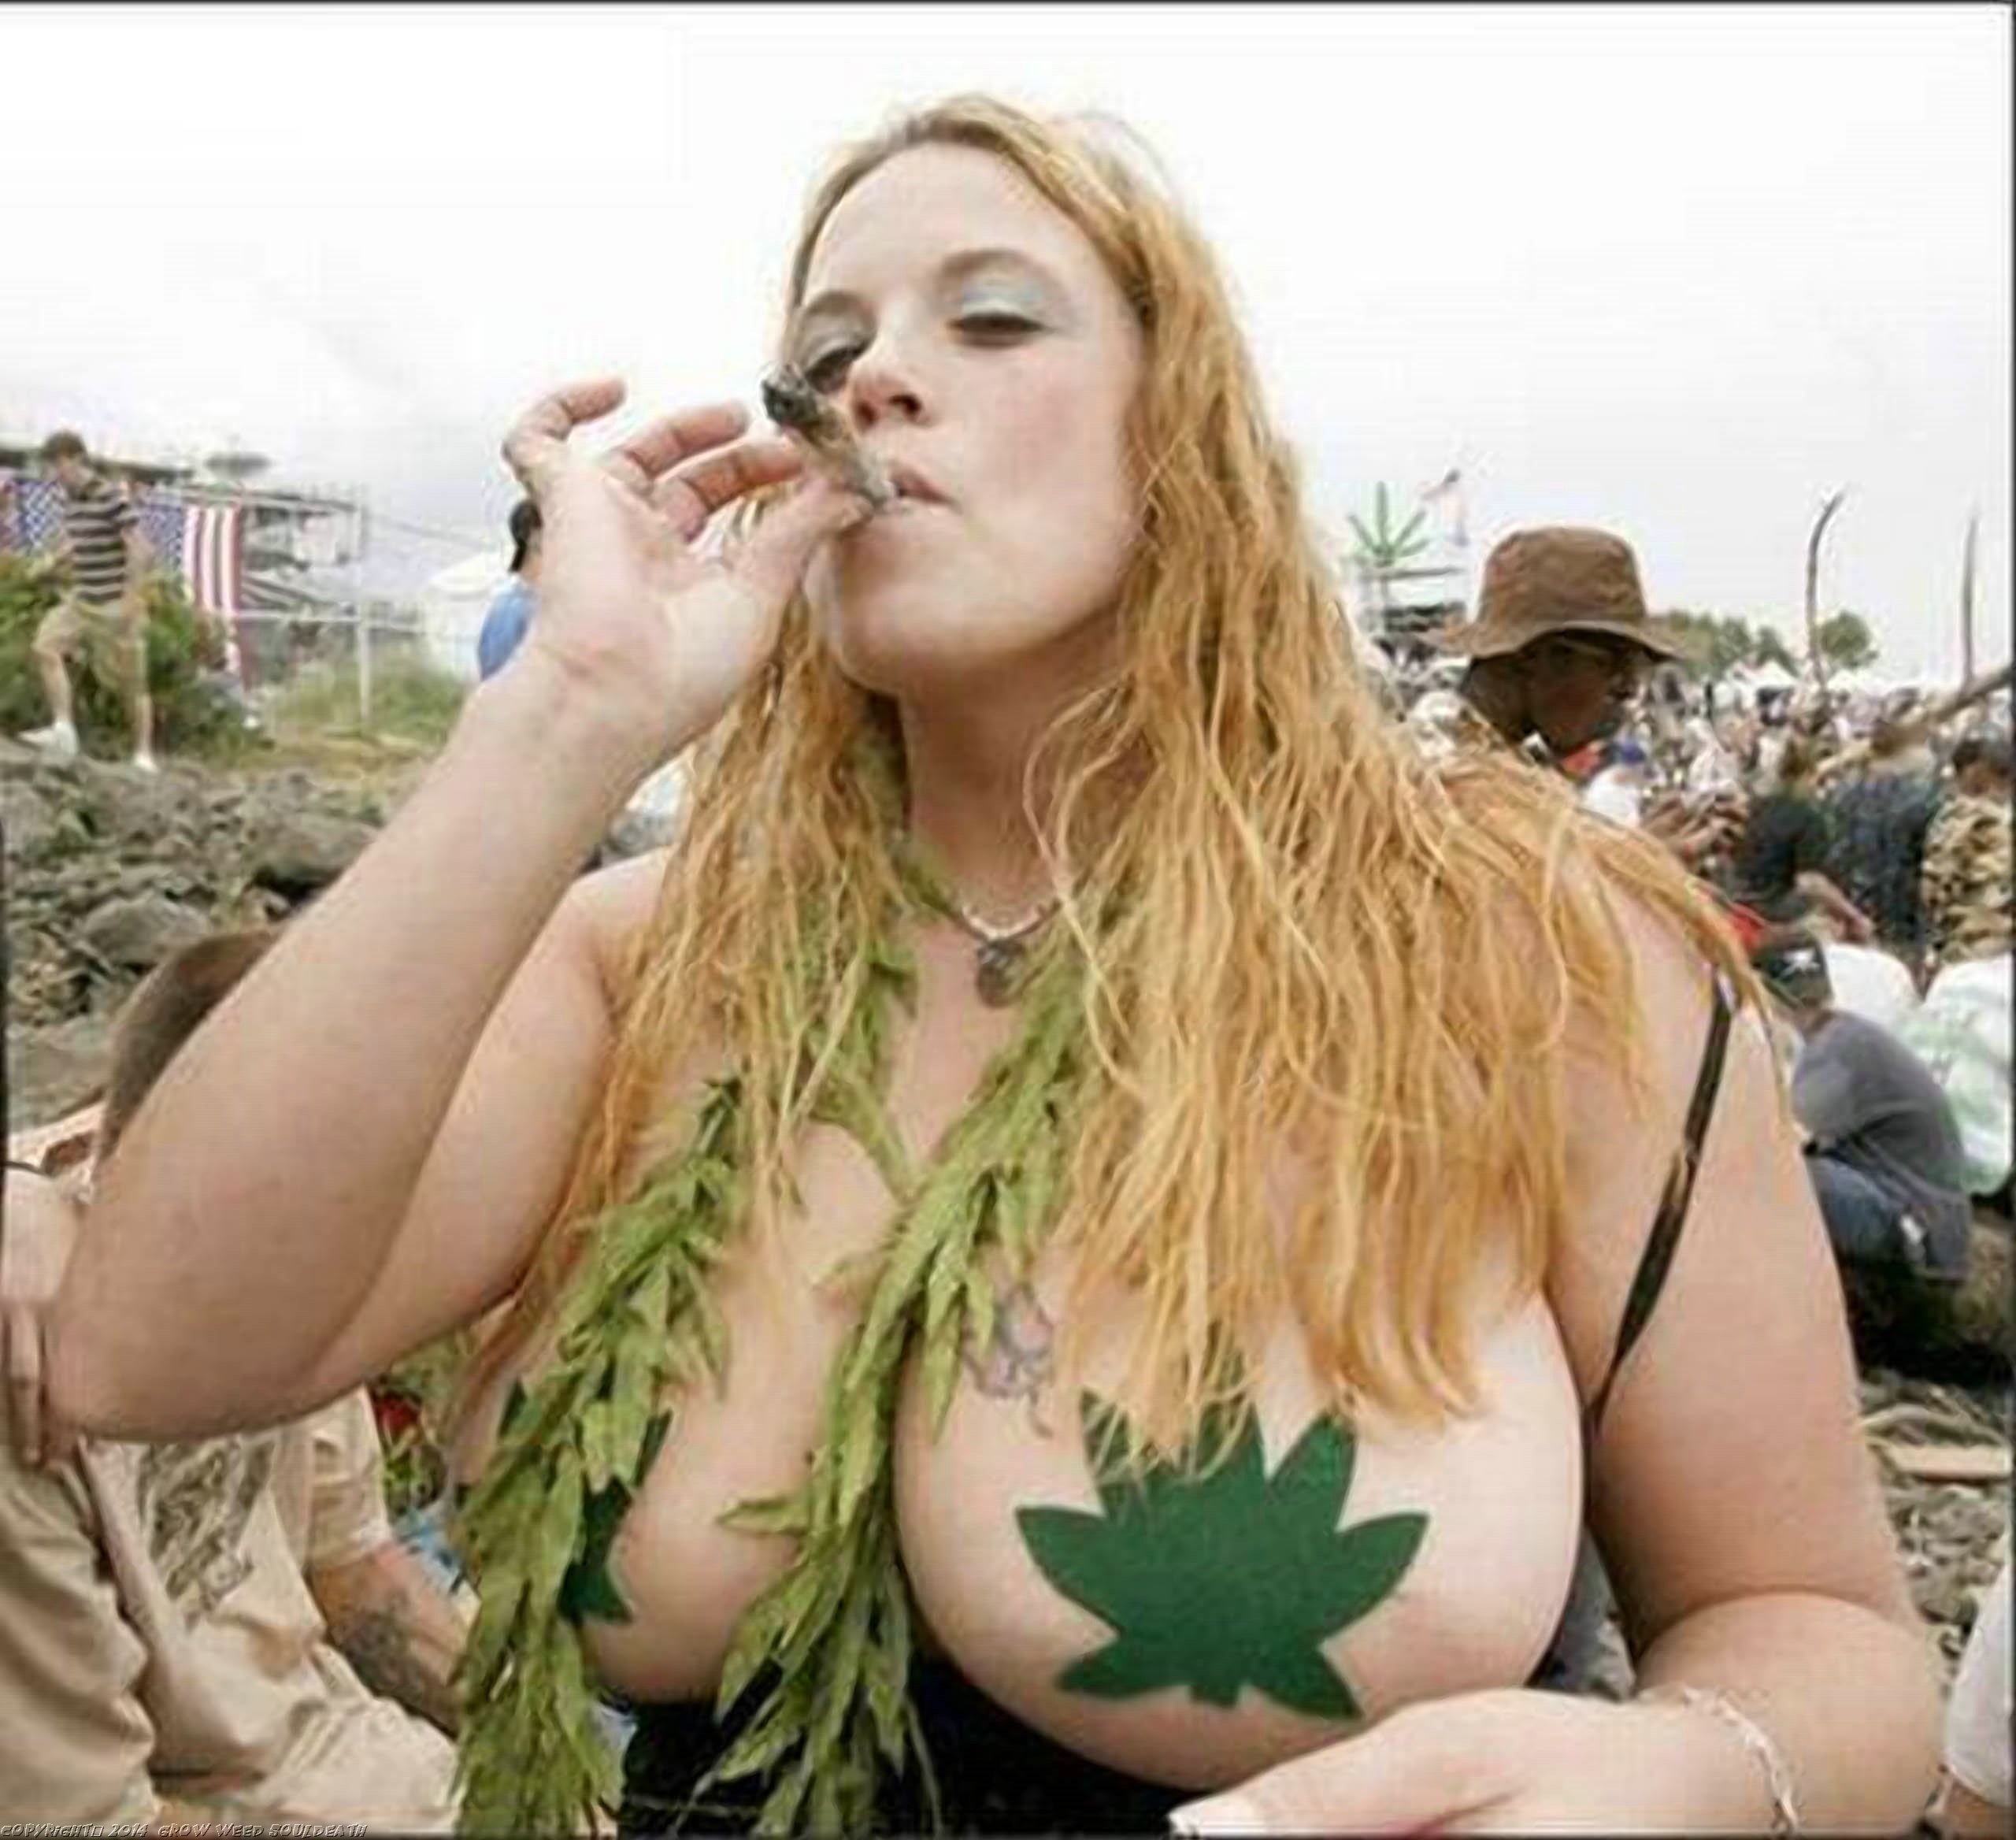 Boobs from weed